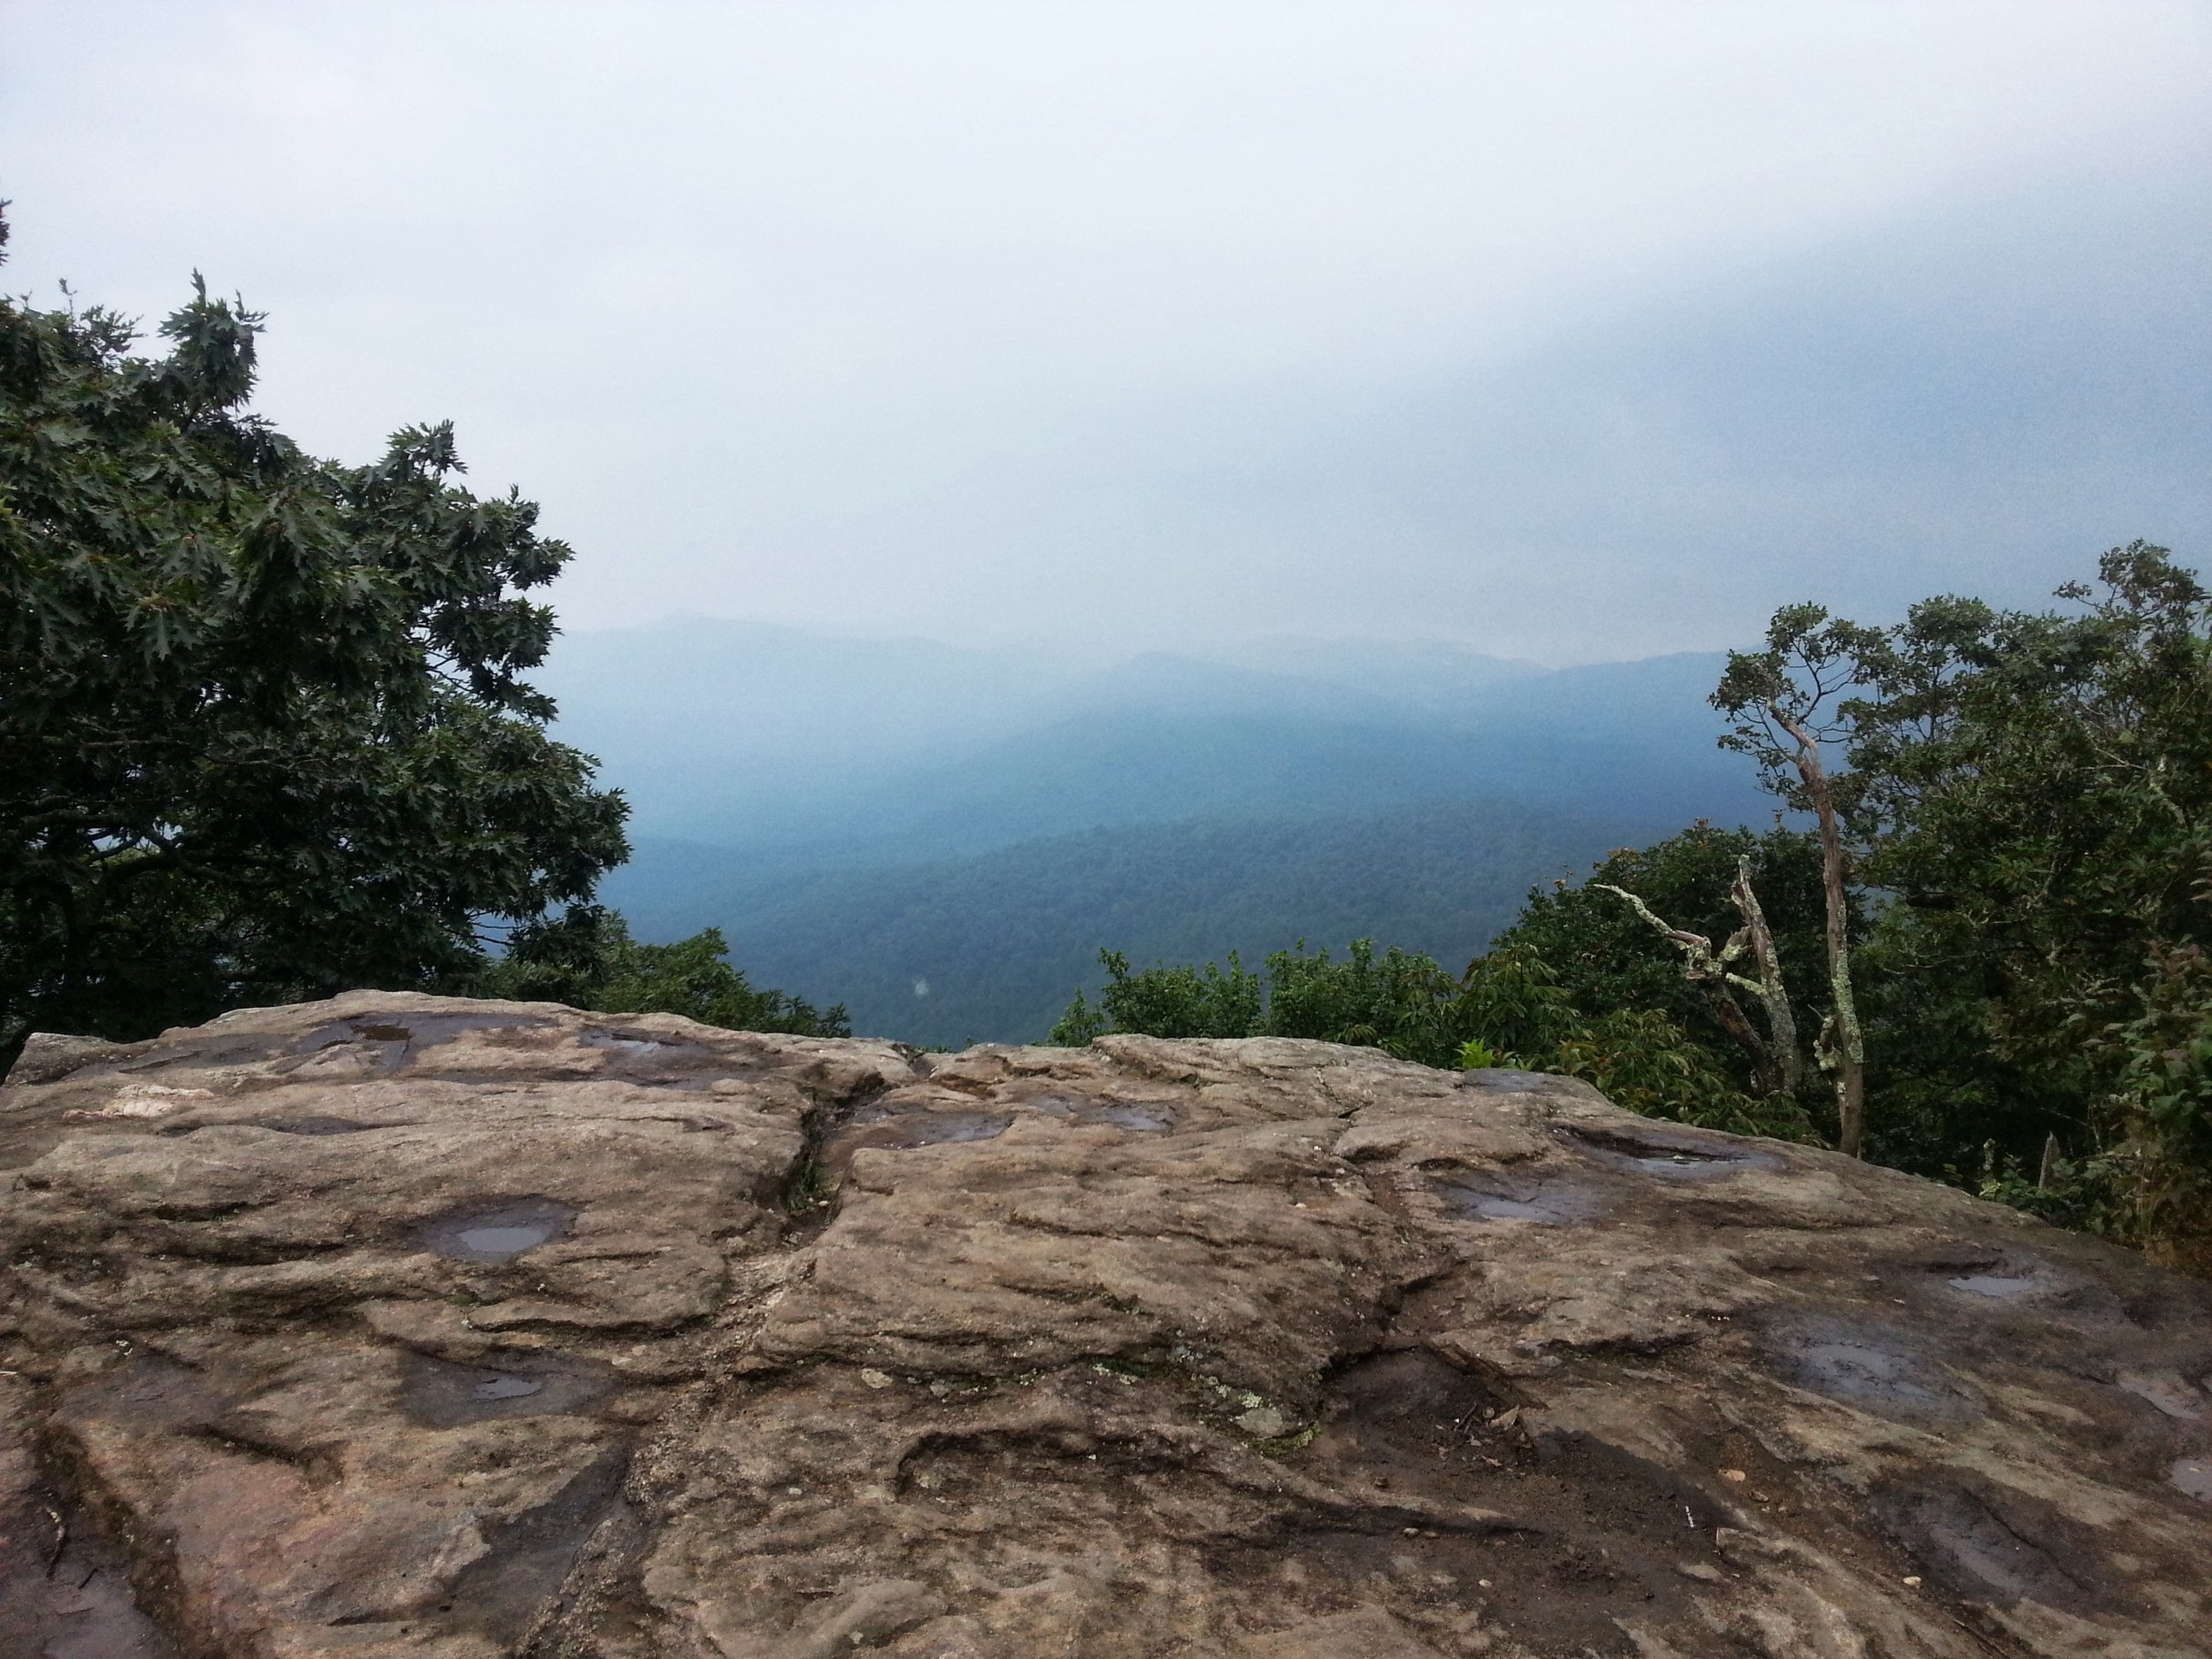 The view from the outcropping, trying to catch a break in the fog.